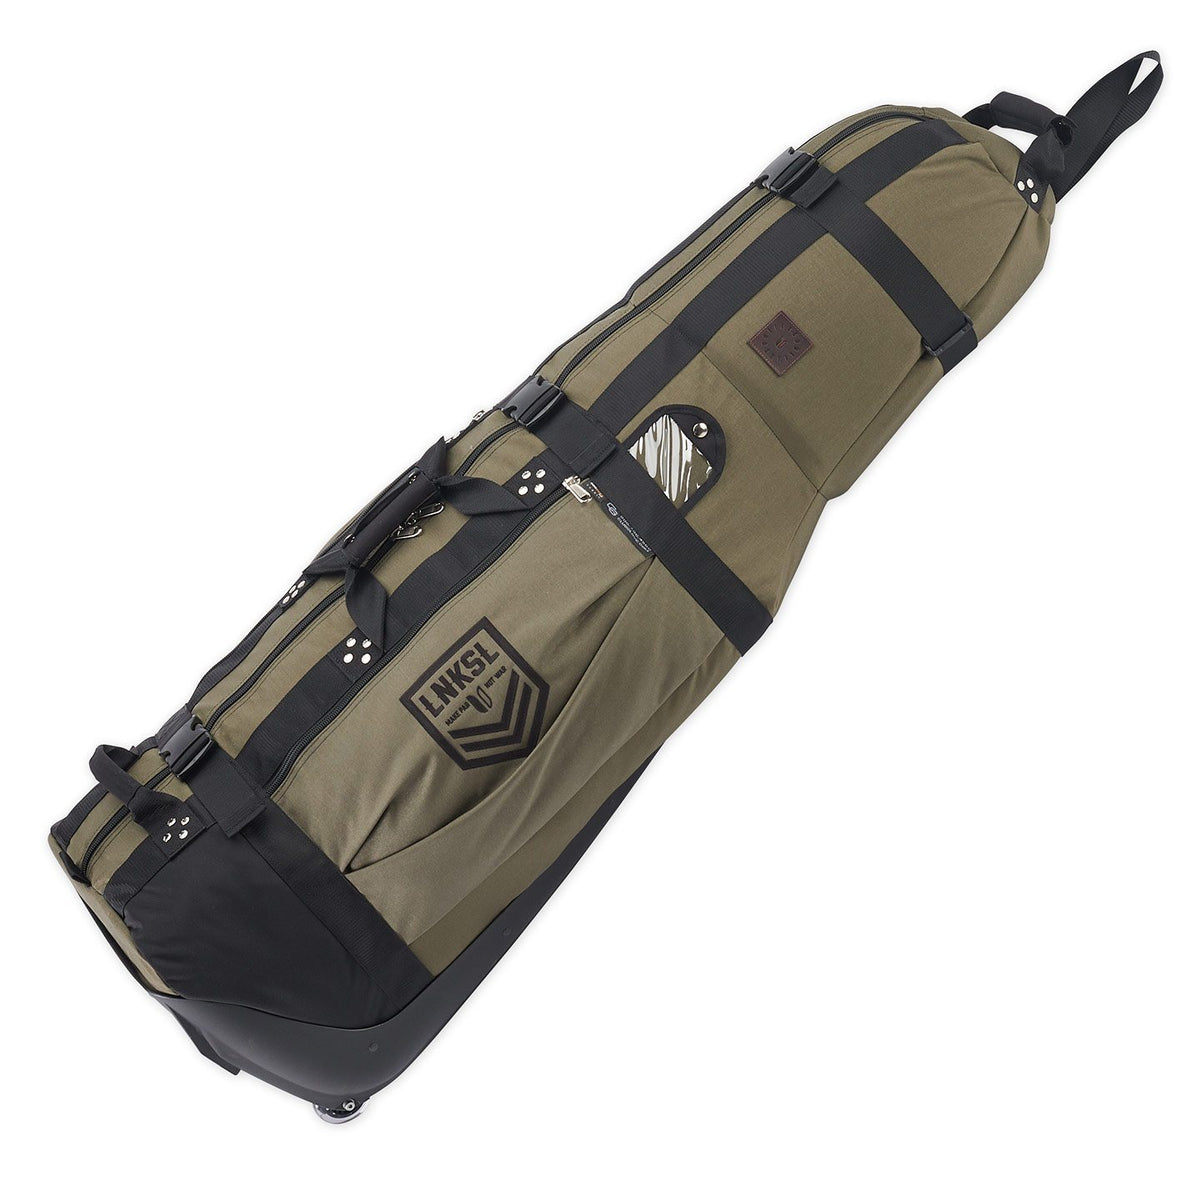 Linksouldier Travel Bag - Pro